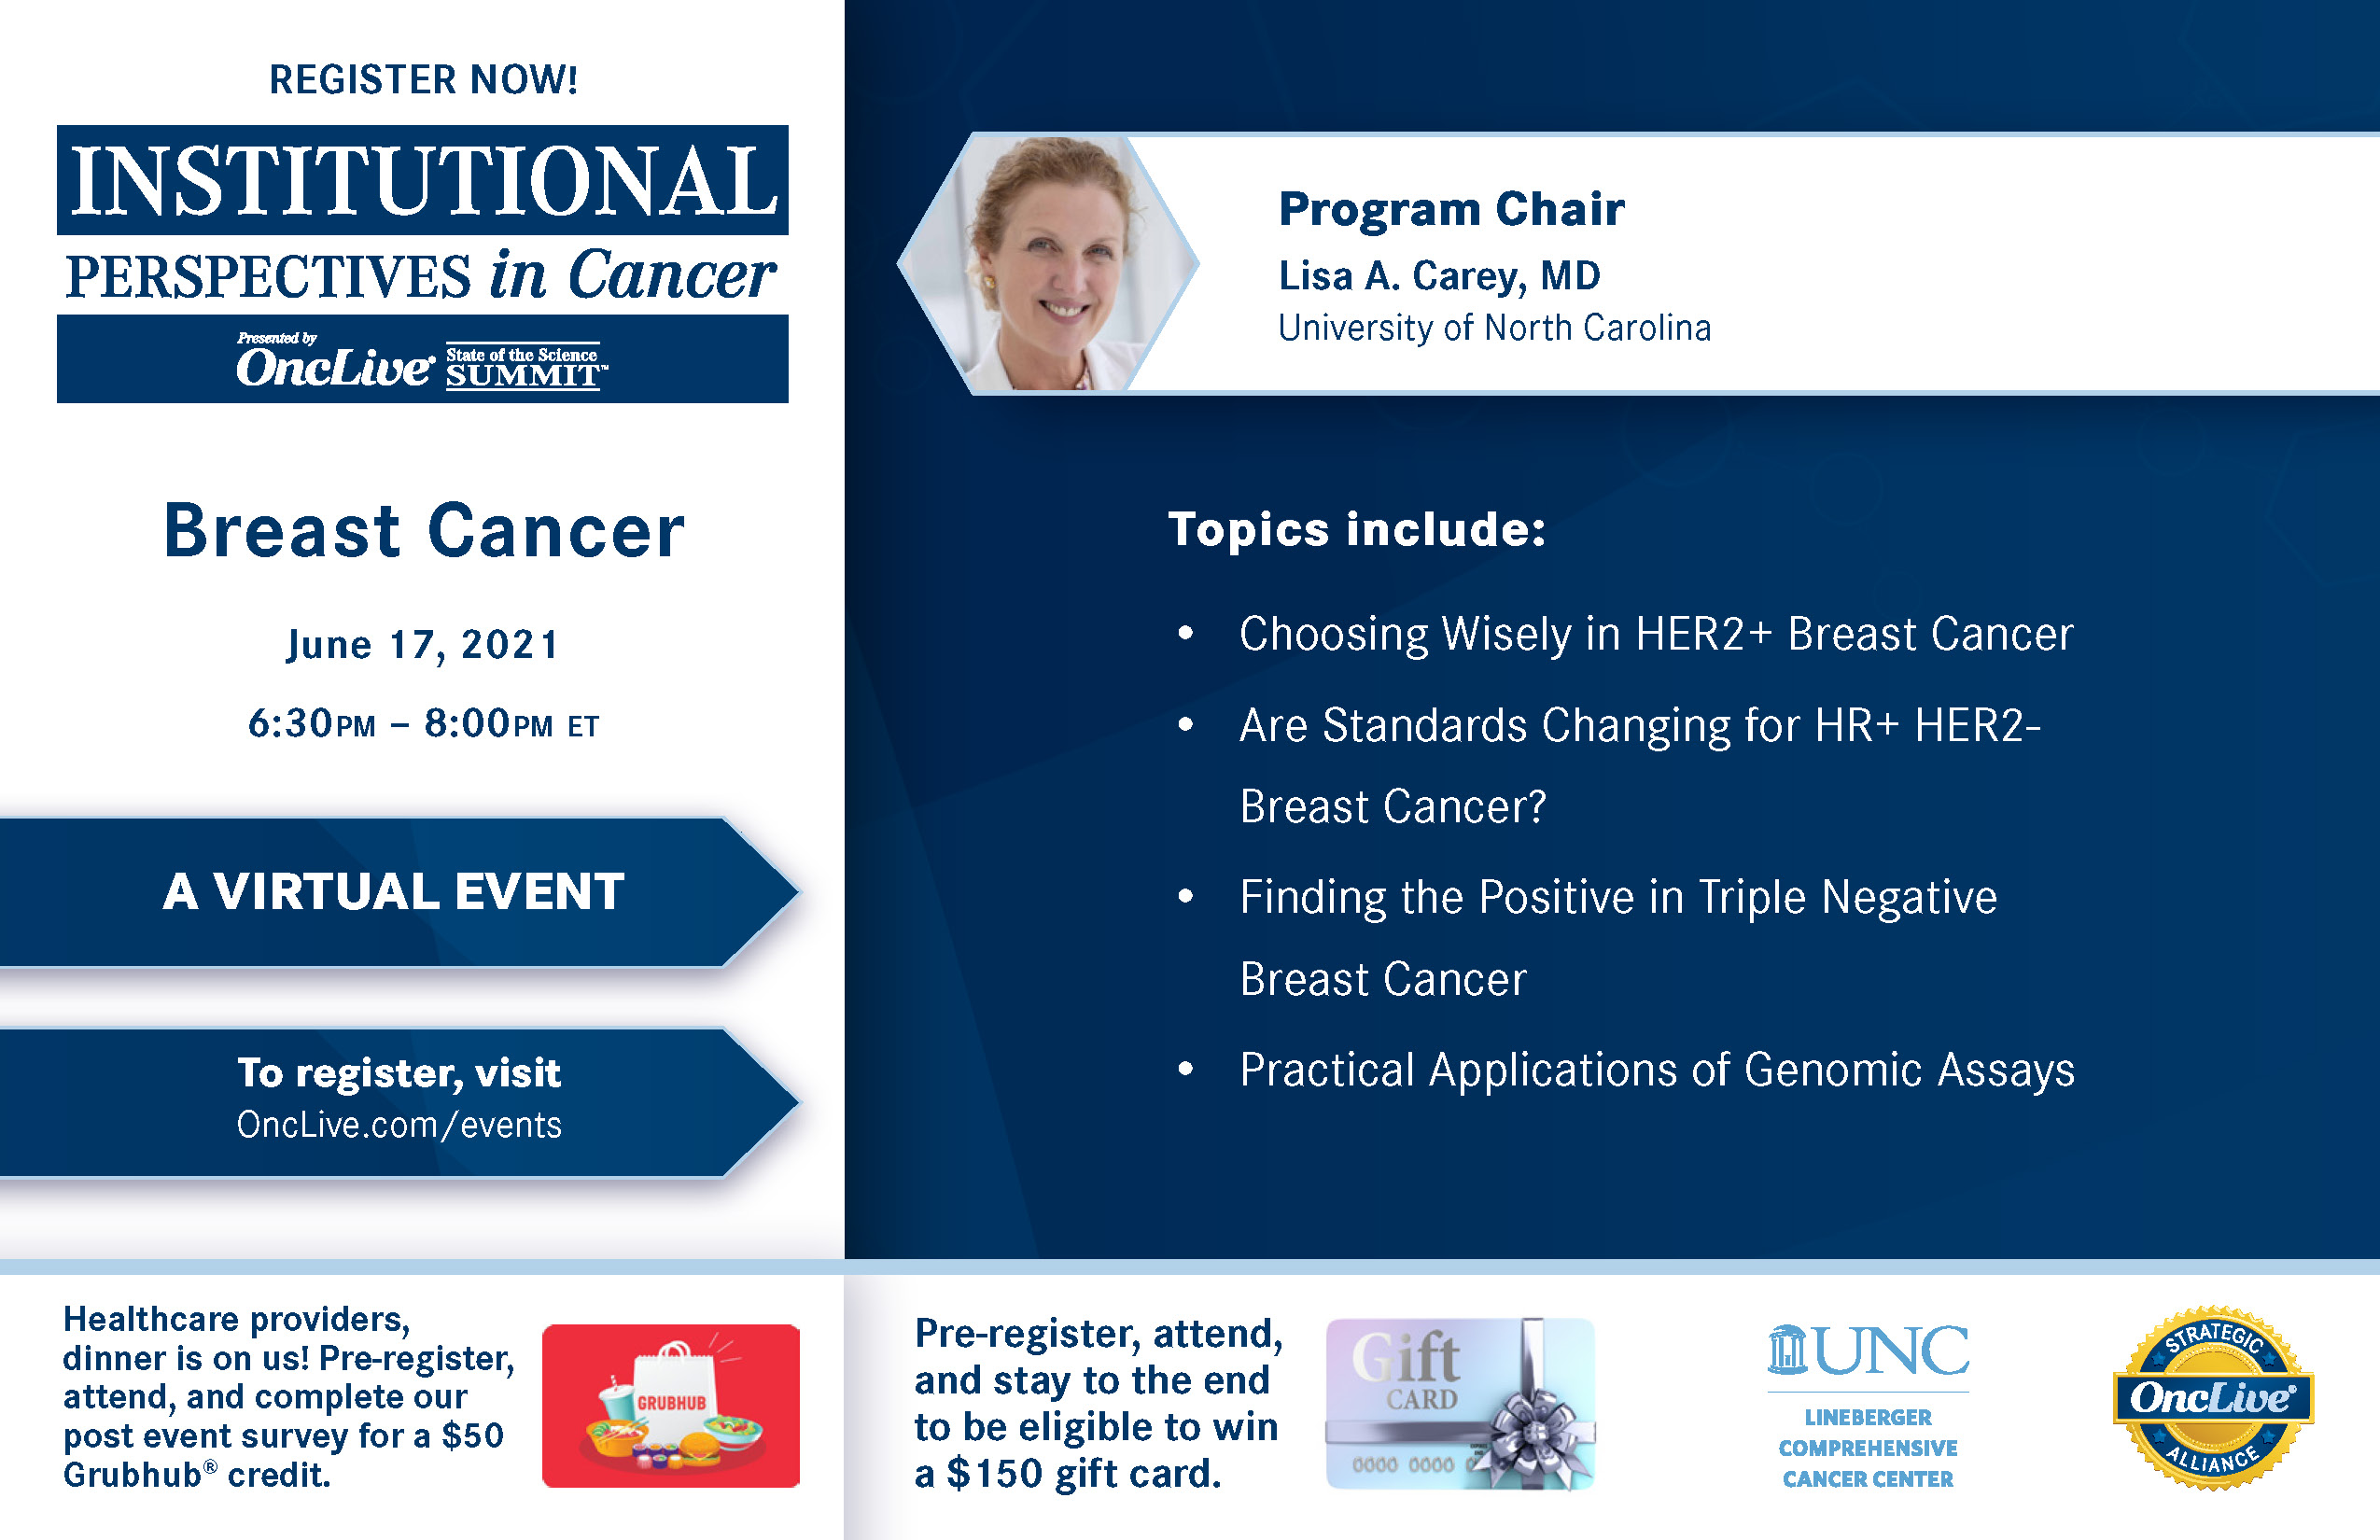 Breast Cancer: A Virtual Event